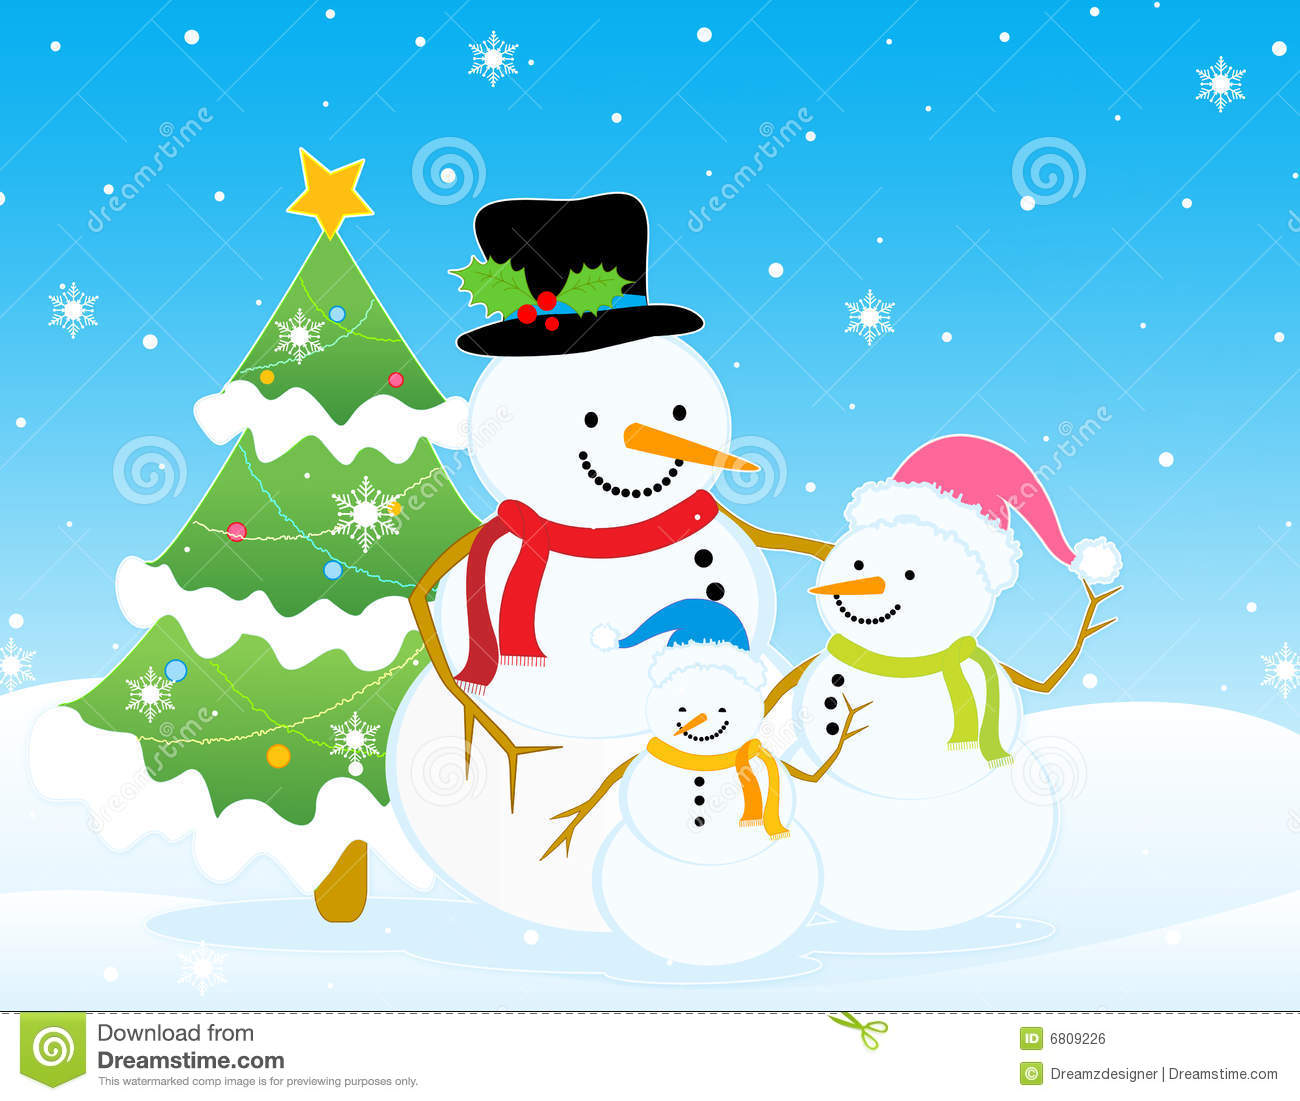 Snowman Christmas Winter Background